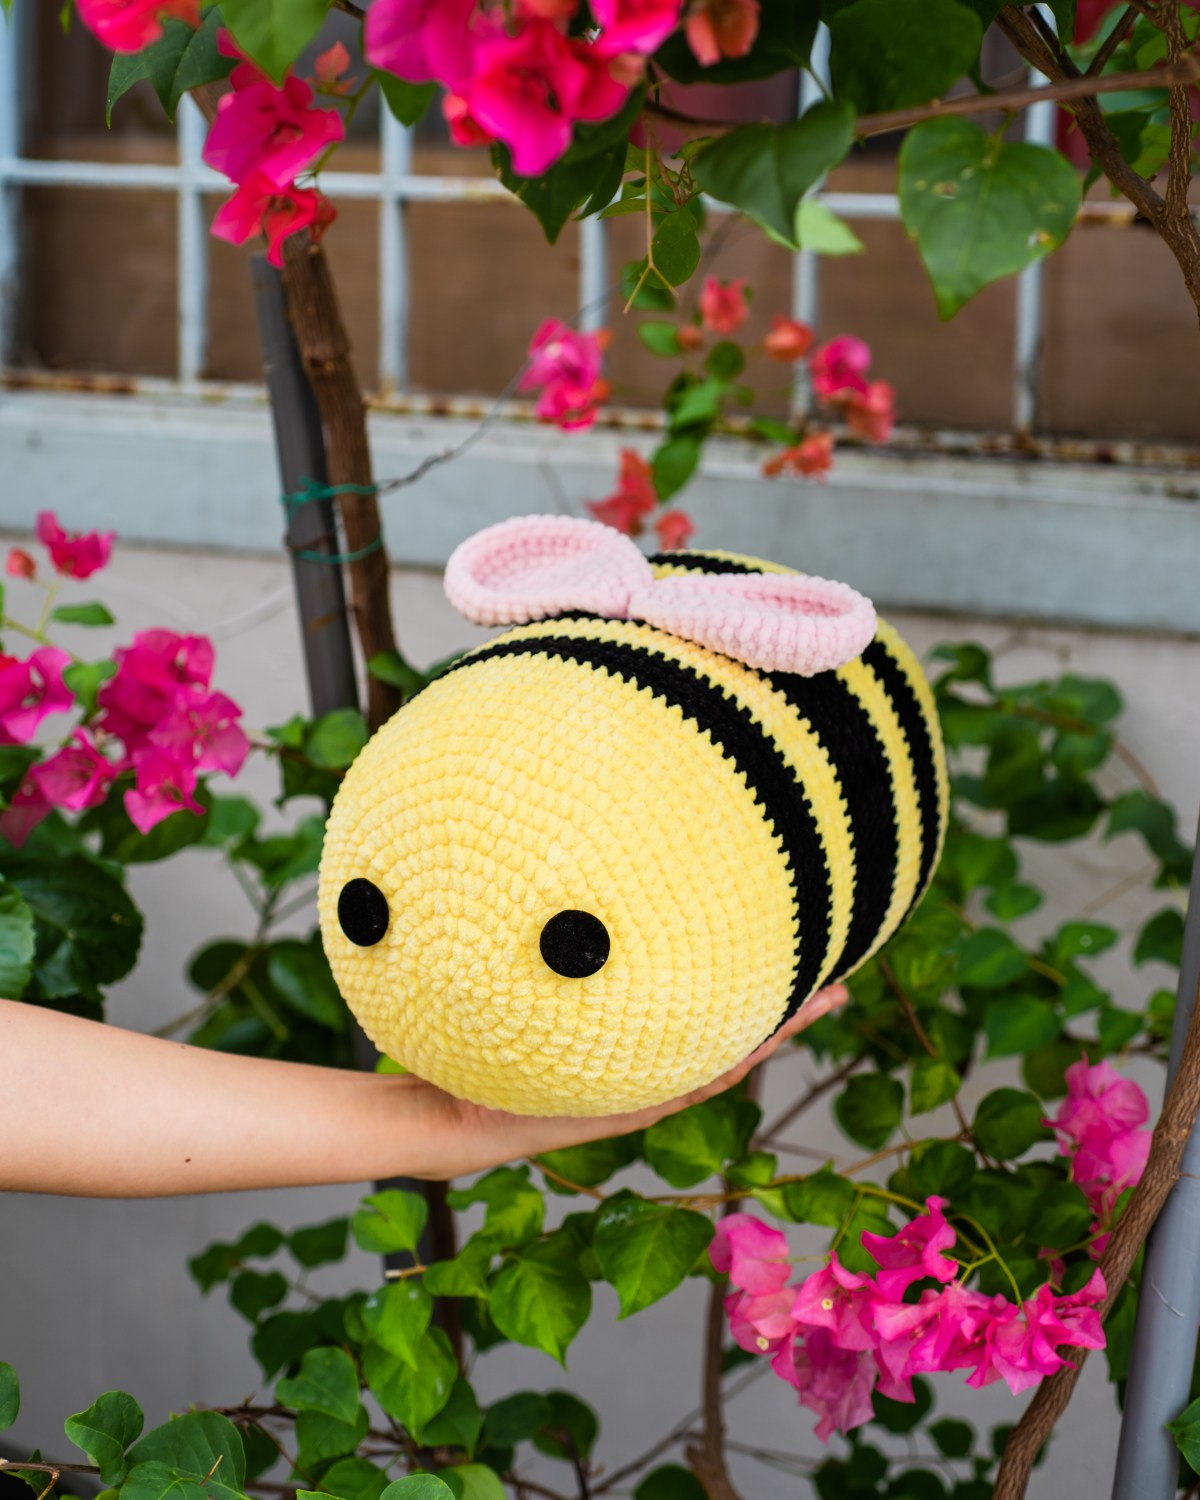 tiny rabbit hole tiktok bee freebie free pattern amigurumi crochet chenille yarn katia bambi flowers